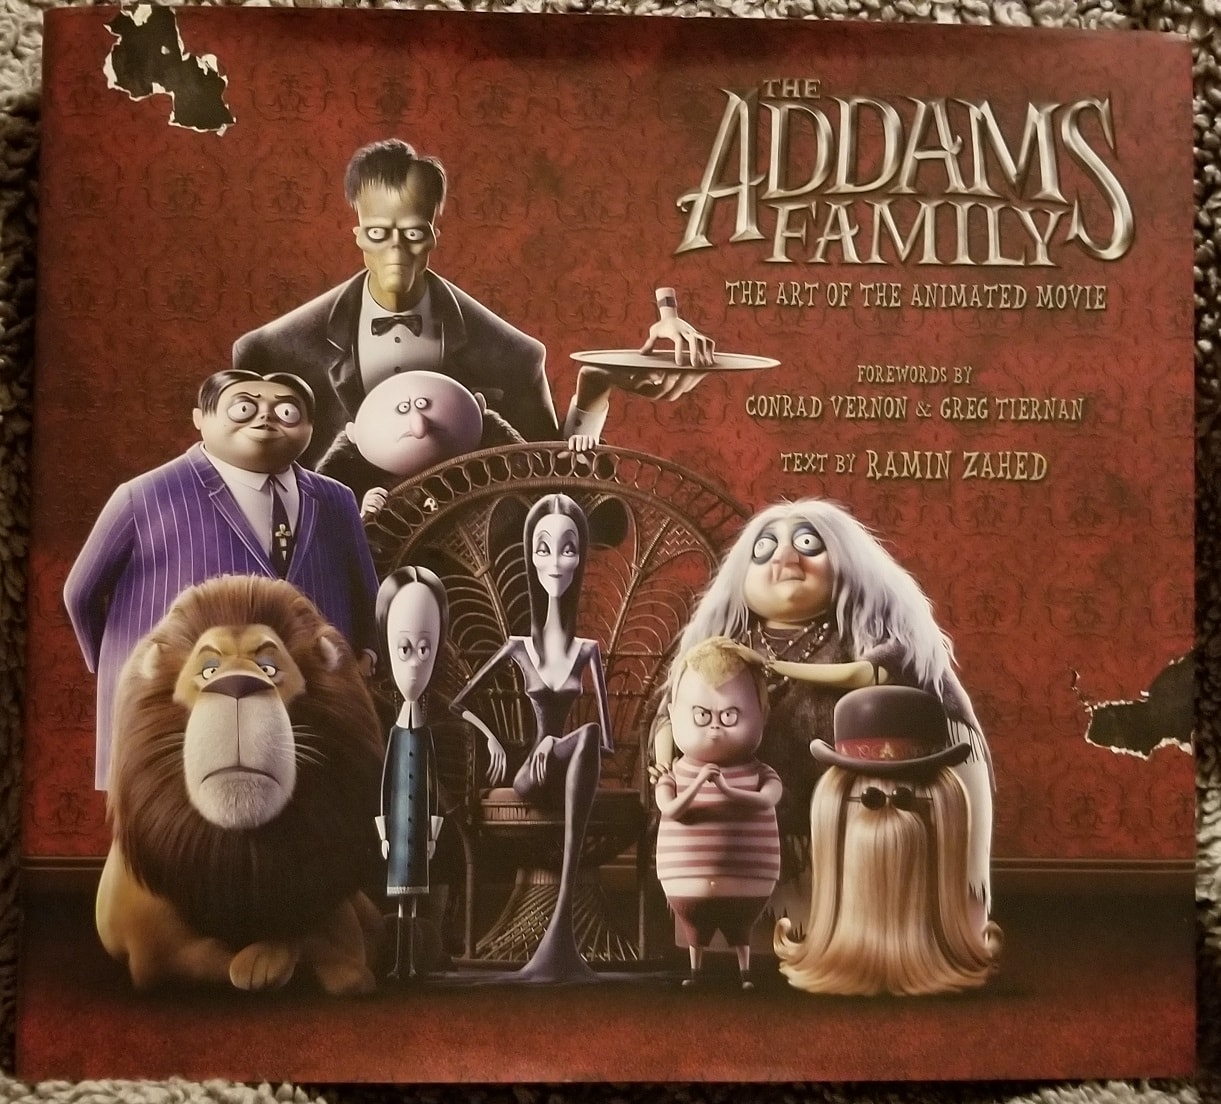 'The Addams Family: The Art of the Animated Movie' review